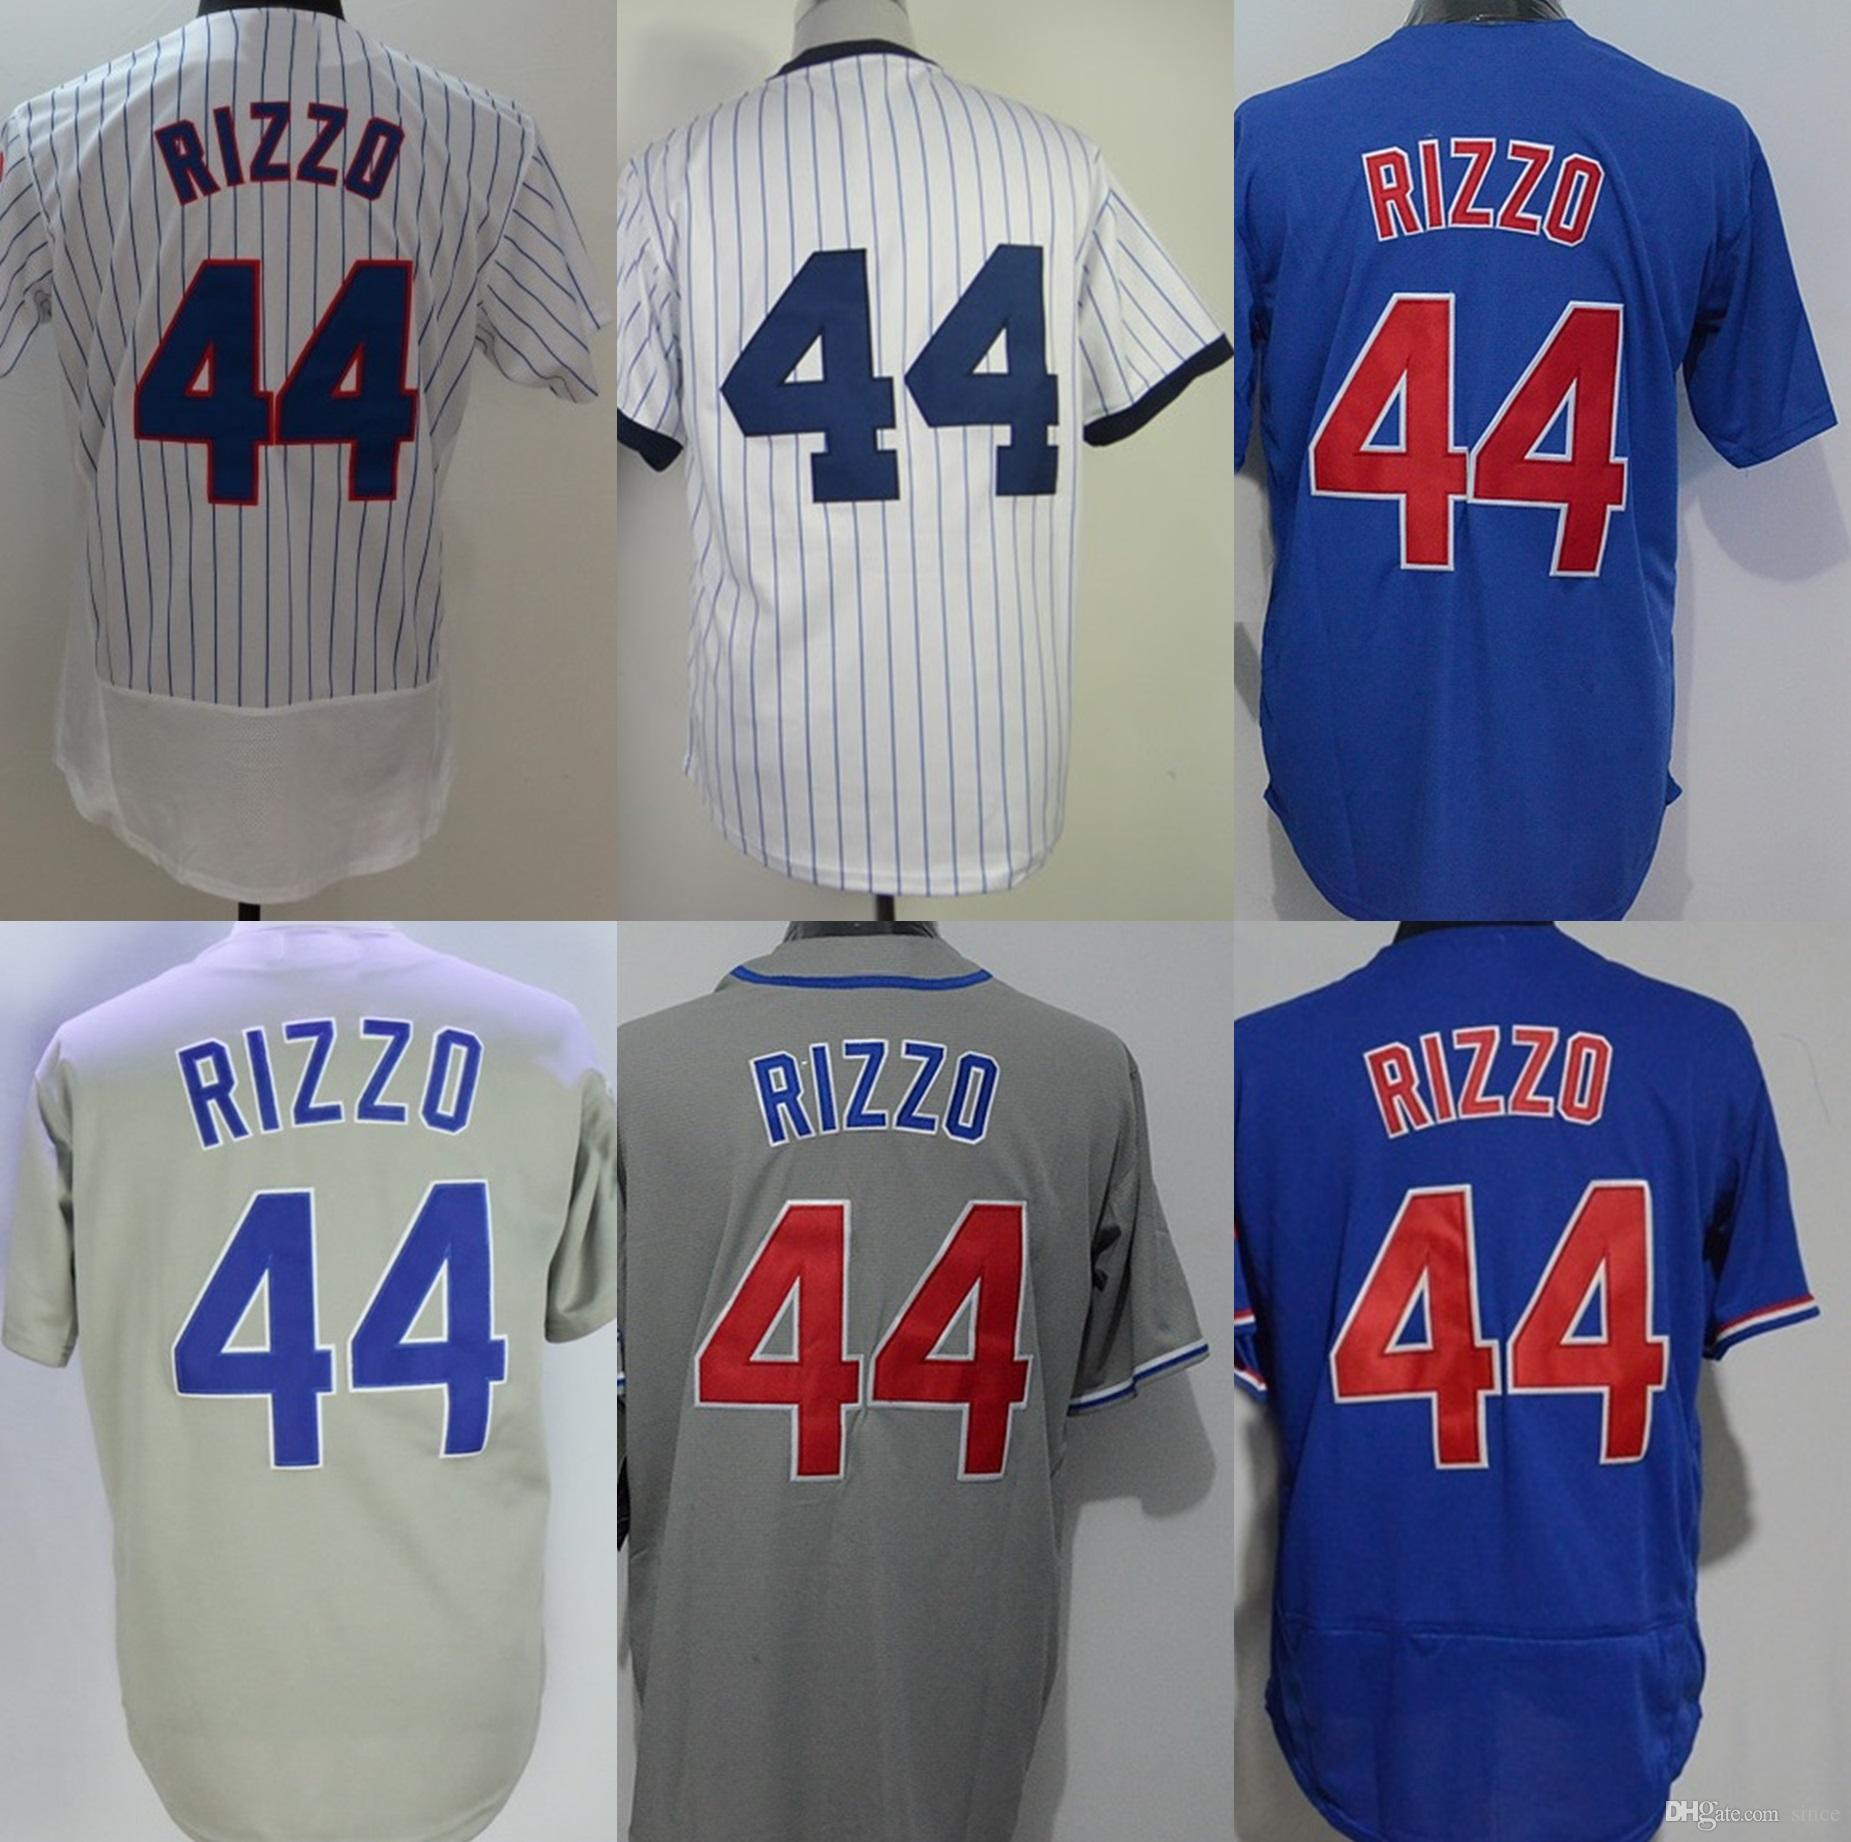 046196e8c60 ... cubs youth sublimated jersey top a9345 360c5  promo code for 2018  factory outlet mens womens kids chicago 44 anthony rizzo grey blue white